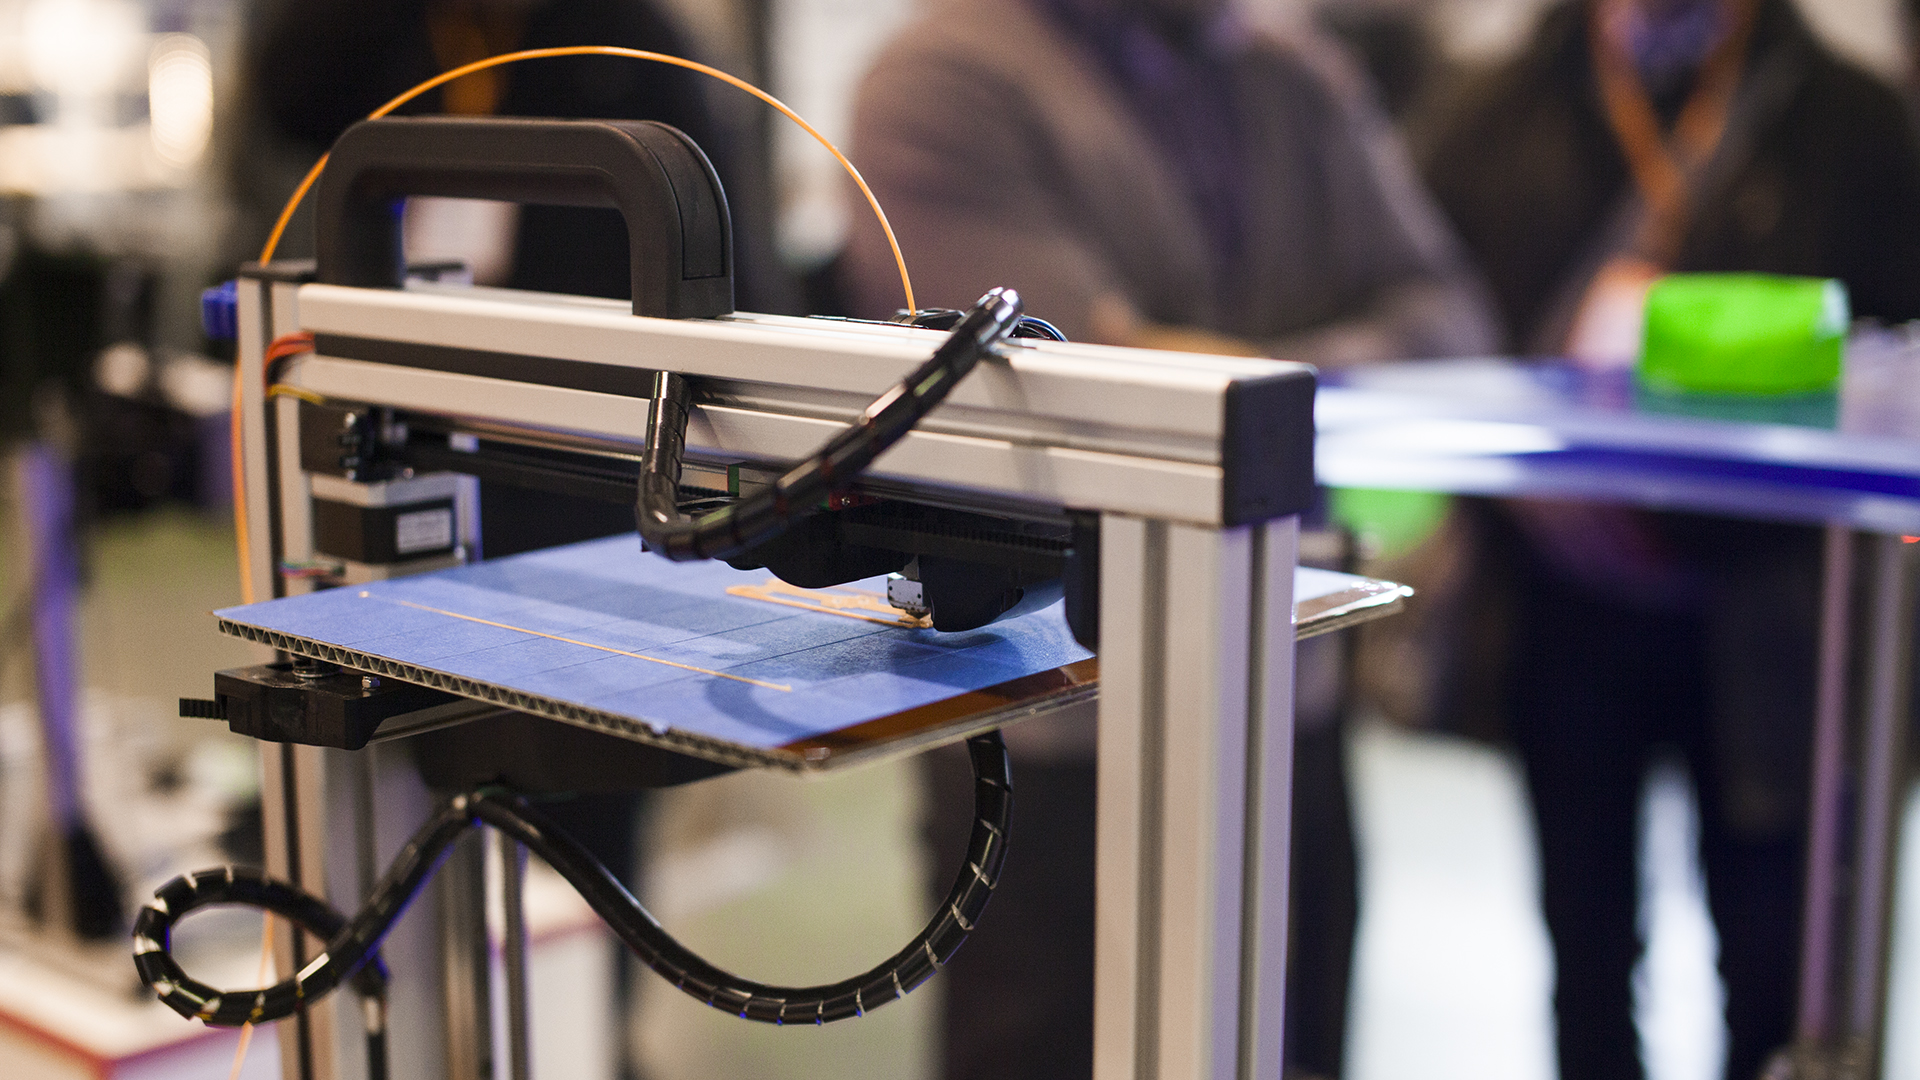 D Printer Exhibition Germany : The development of d printing in russia